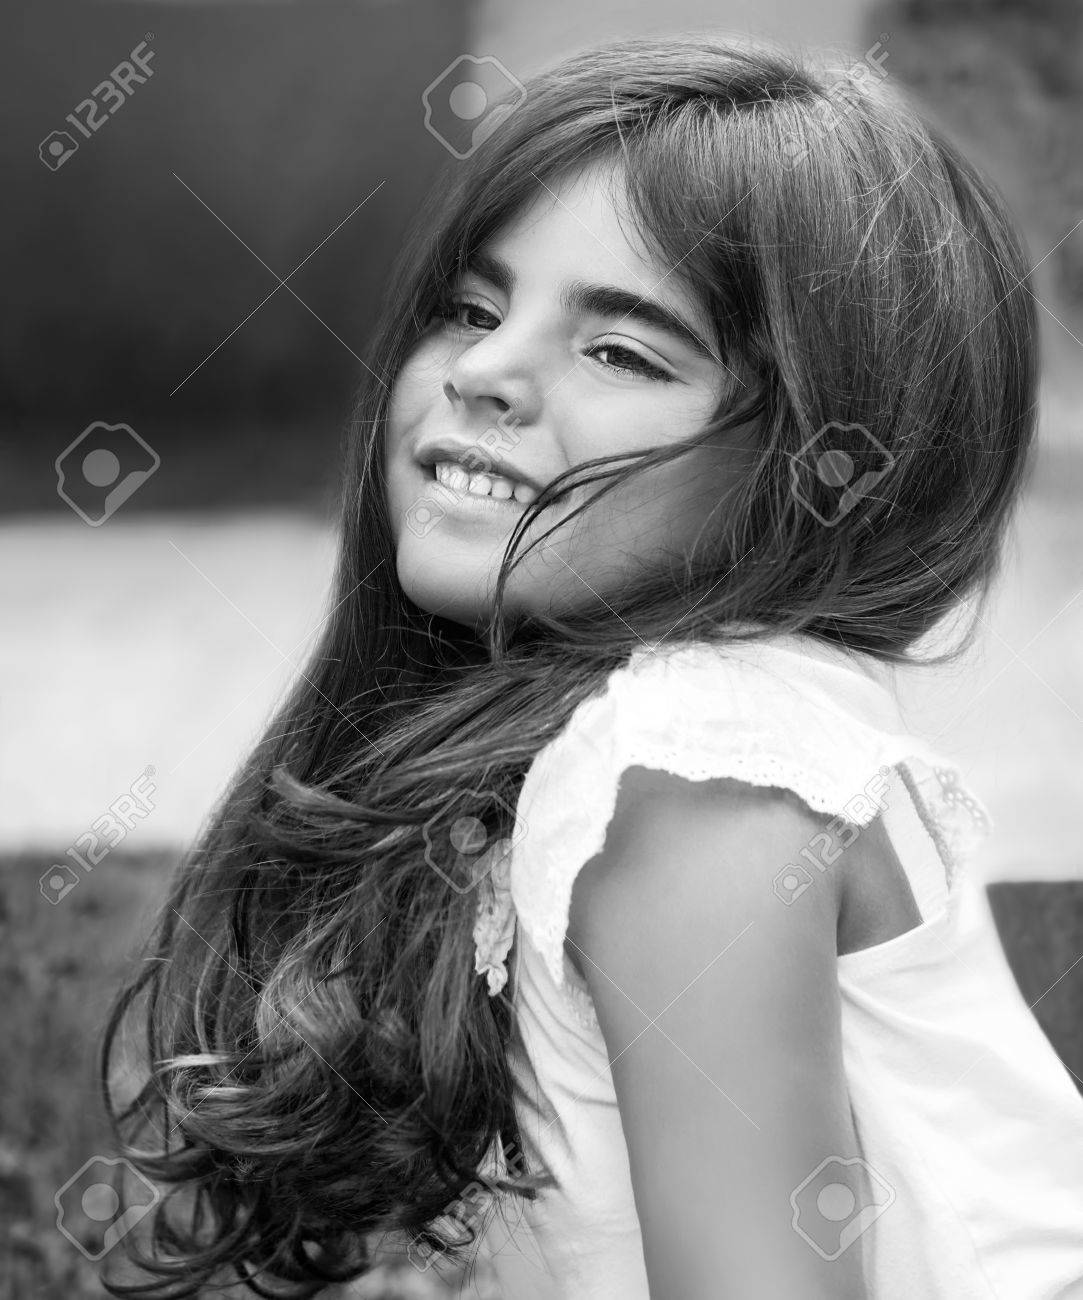 Fashion black and white photo of a beautiful little girl having fun in the park